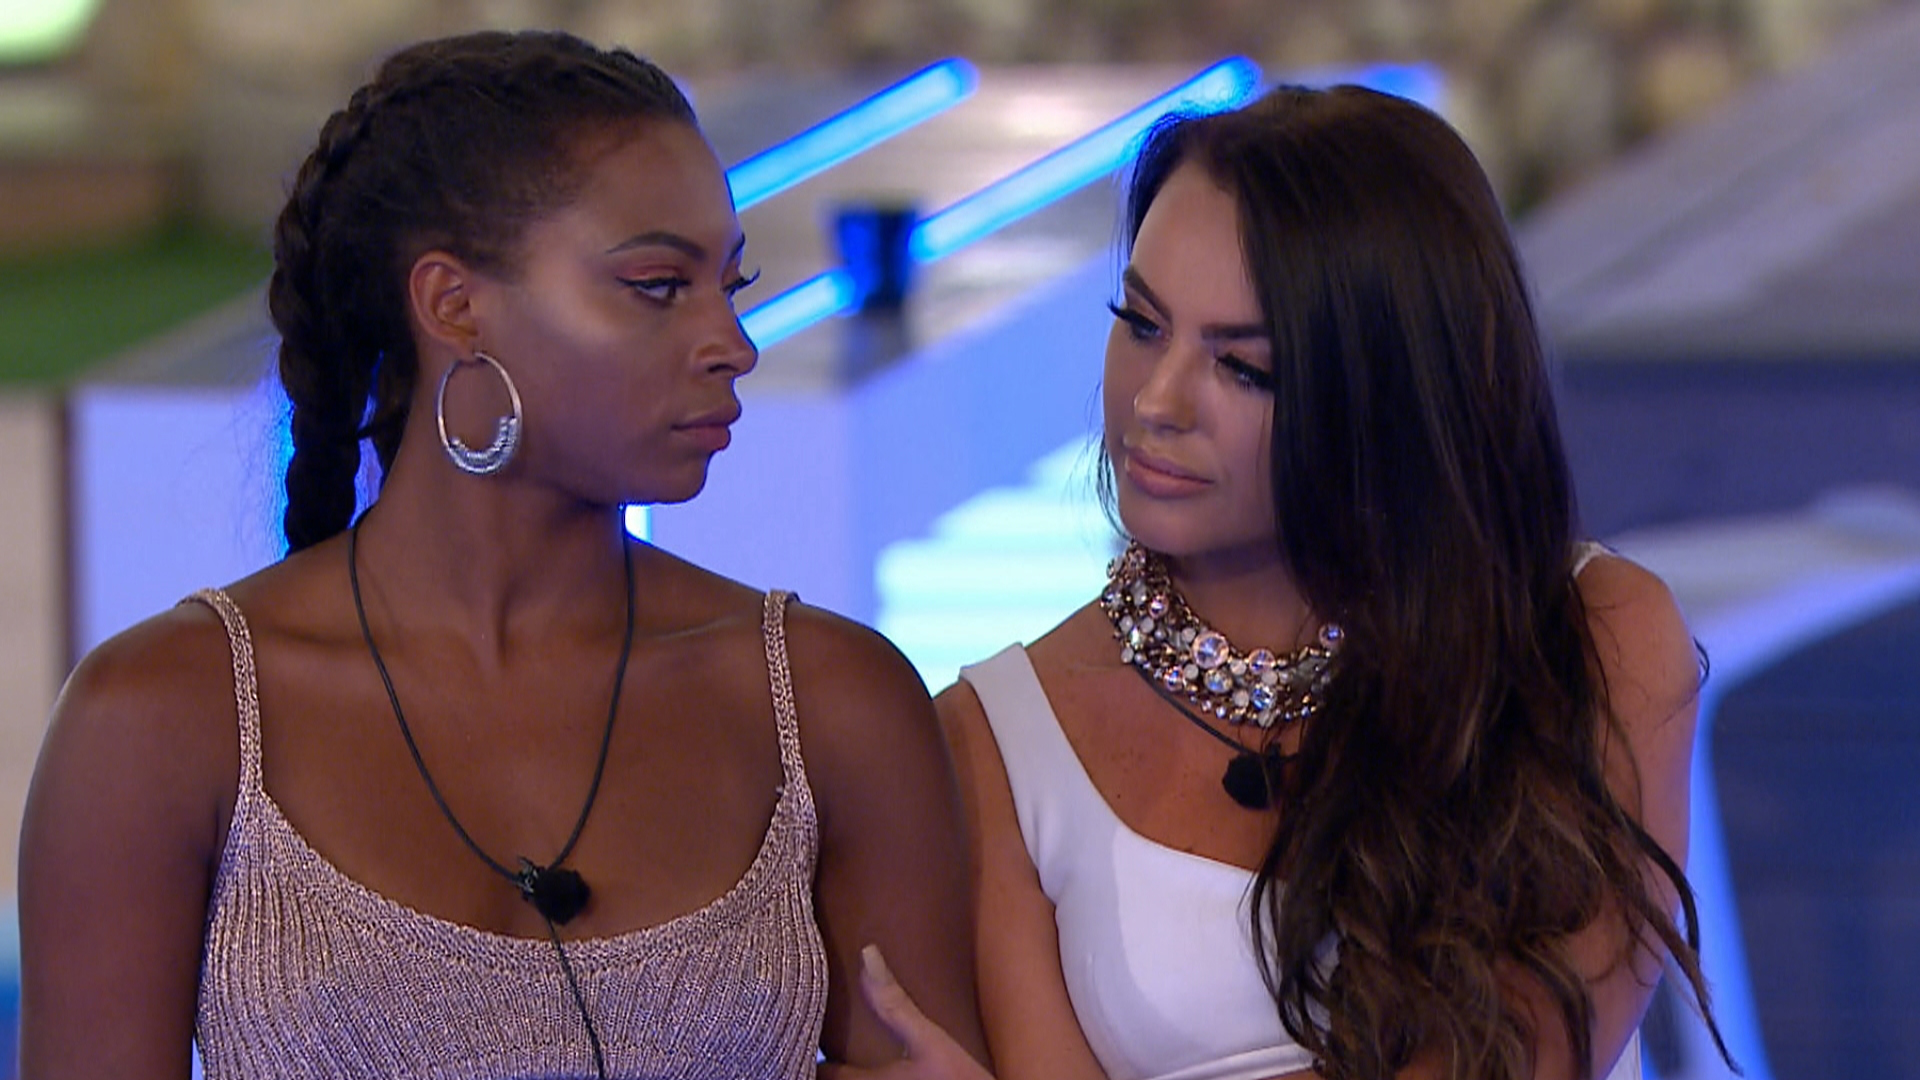 From ITV Studios  Love Island: SR4: Ep19 on ITV2  Pictured: The Islanders' worst fears are confirmed when a surprise text reveals a looming recoupling: Islanders, tonight there will be a recoupling. The boys will choose which girls they want to couple up with and the girl not picked will be dumped from the island.  With both Samira and Rosie in a compromising position, having failed to find love, it soon becomes clear that a big decision will lie with new boy Sam.  This photograph is (C) ITV Plc and can only be reproduced for editorial purposes directly in connection with the programme or event mentioned above, or ITV plc. Once made available by ITV plc Picture Desk, this photograph can be reproduced once only up until the transmission [TX] date and no reproduction fee will be charged. Any subsequent usage may incur a fee. This photograph must not be manipulated [excluding basic cropping] in a manner which alters the visual appearance of the person photographed deemed detrimental or inappropriate by ITV plc Picture Desk.  This photograph must not be syndicated to any other company, publication or website, or permanently archived, without the express written permission of ITV Plc Picture Desk. Full Terms and conditions are available on the website www.itvpictures.co.uk  For further information please contact: james.hilder@itv.com / 0207 157 3052  ITV, TL